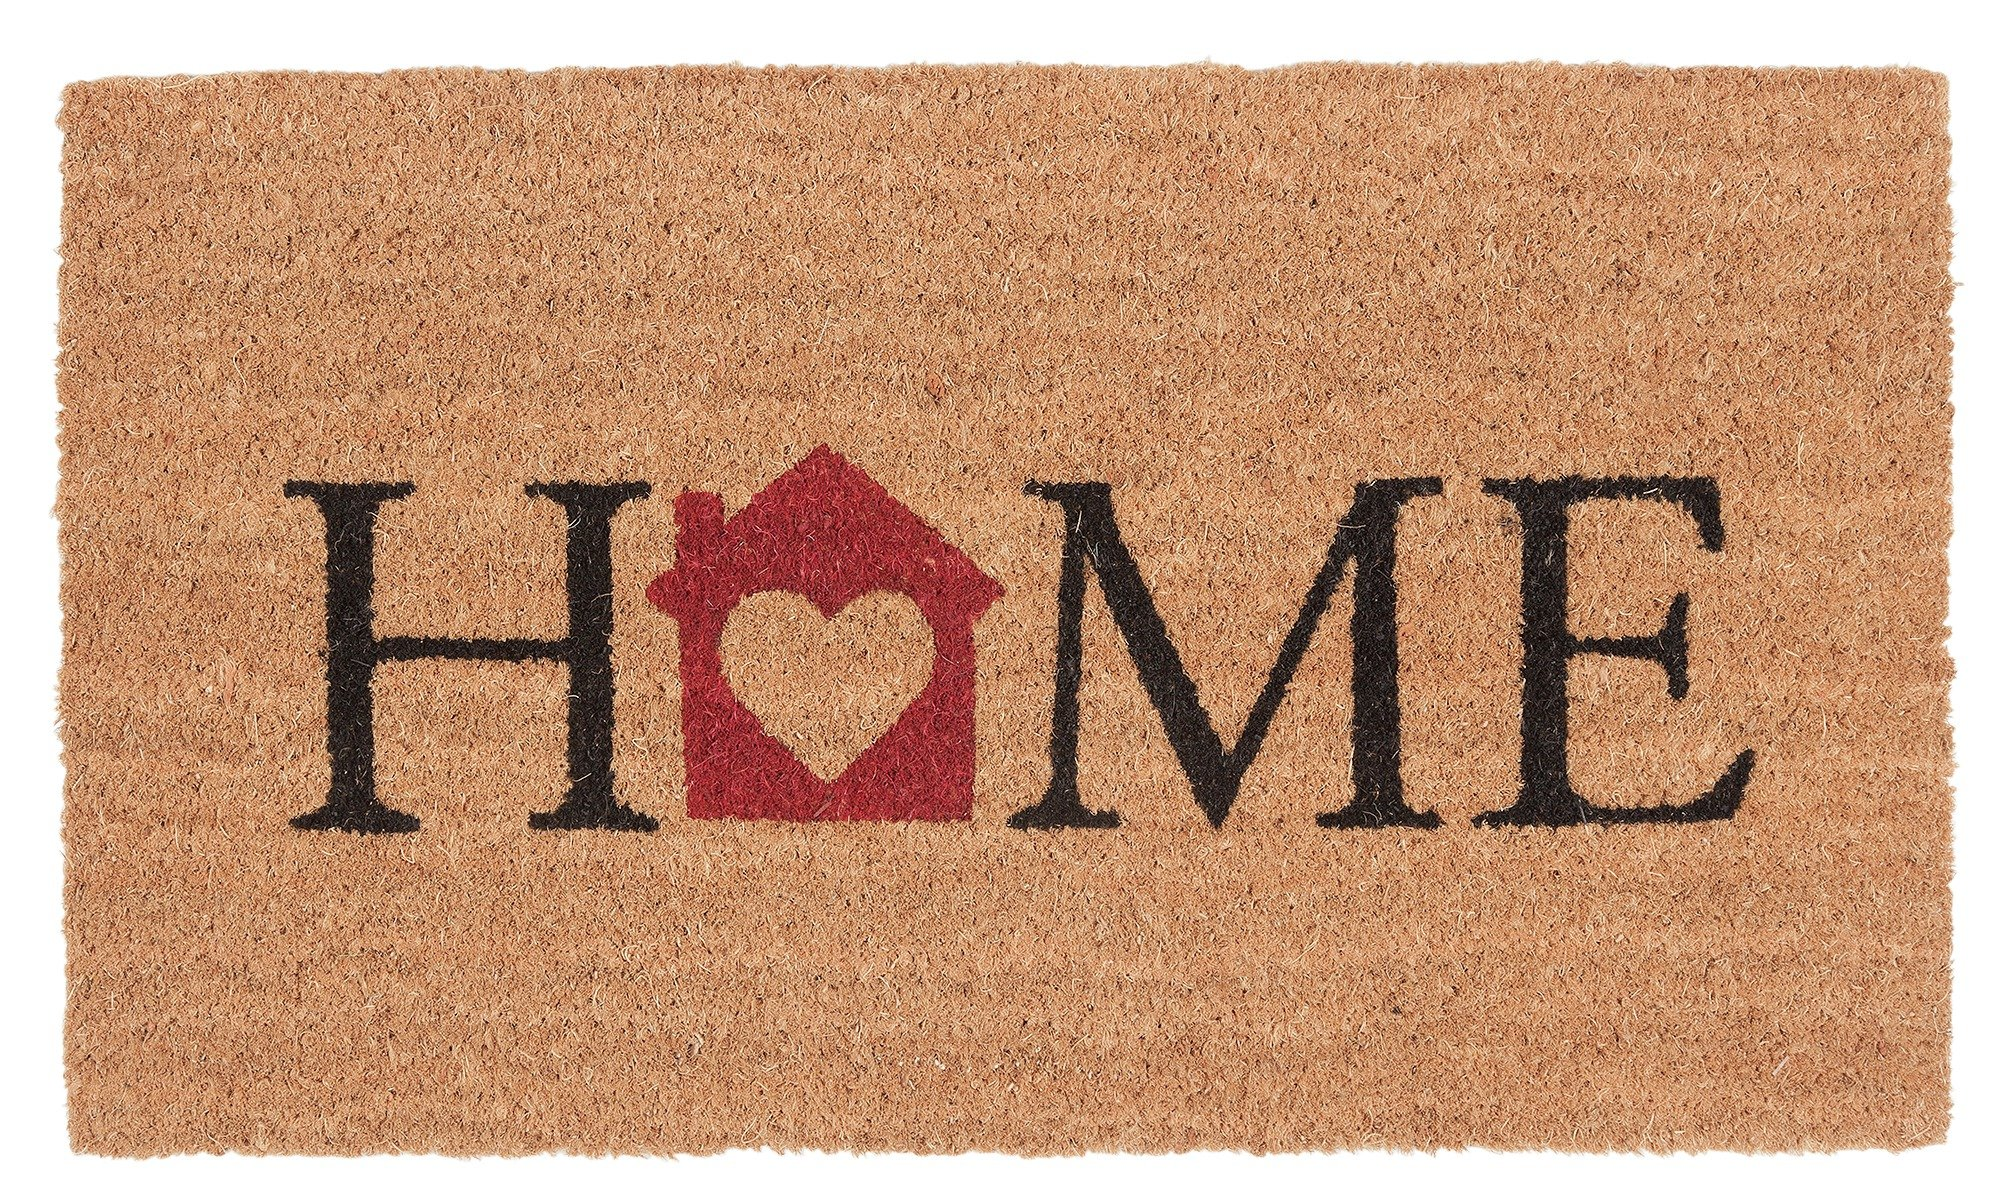 HOME Heart of Home Doormat - 40x70cm